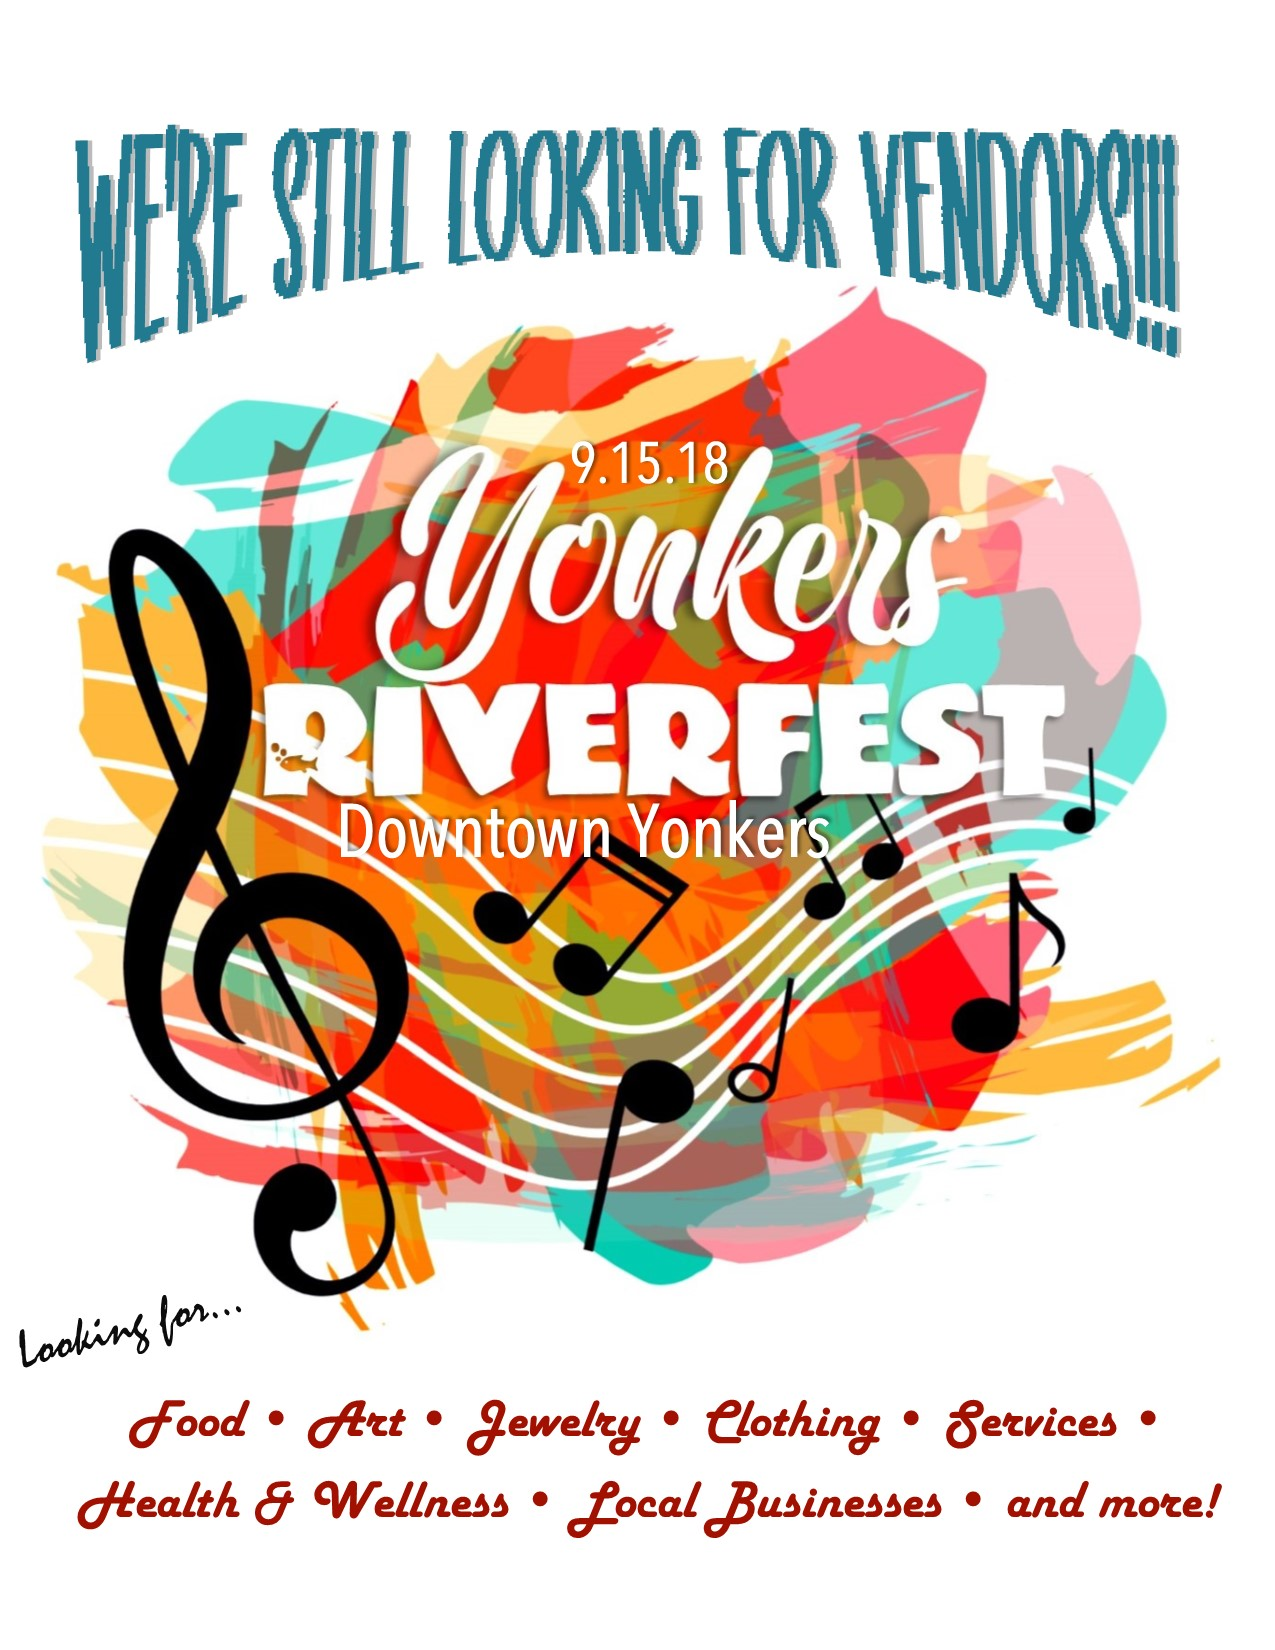 We are still looking for Vendors for Yonkers Riverfest!